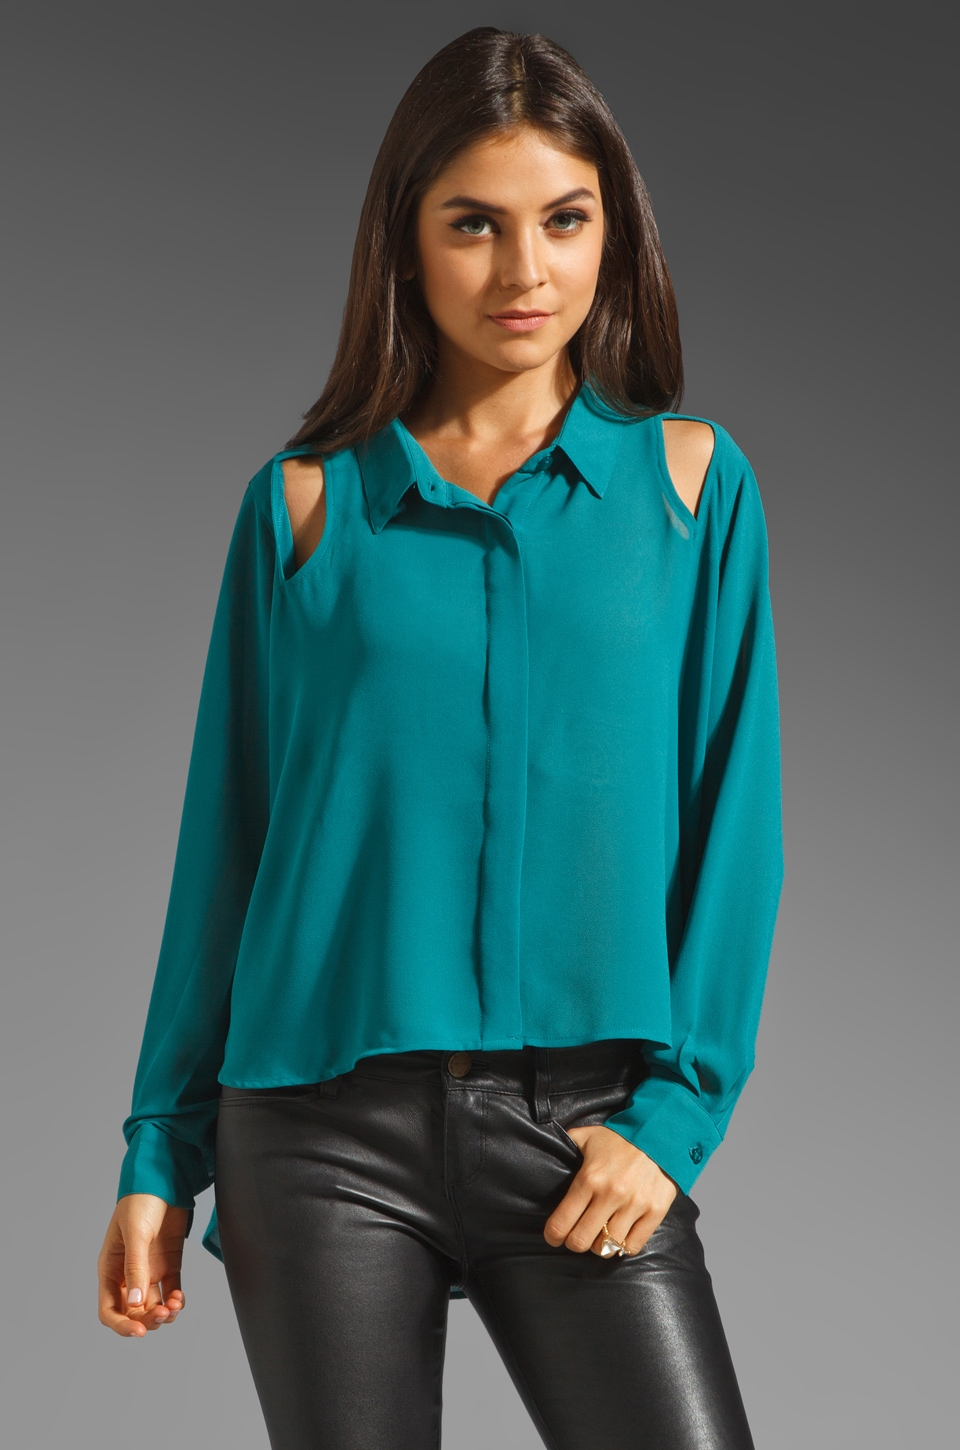 MINKPINK Blade Runner Shirt in Emerald